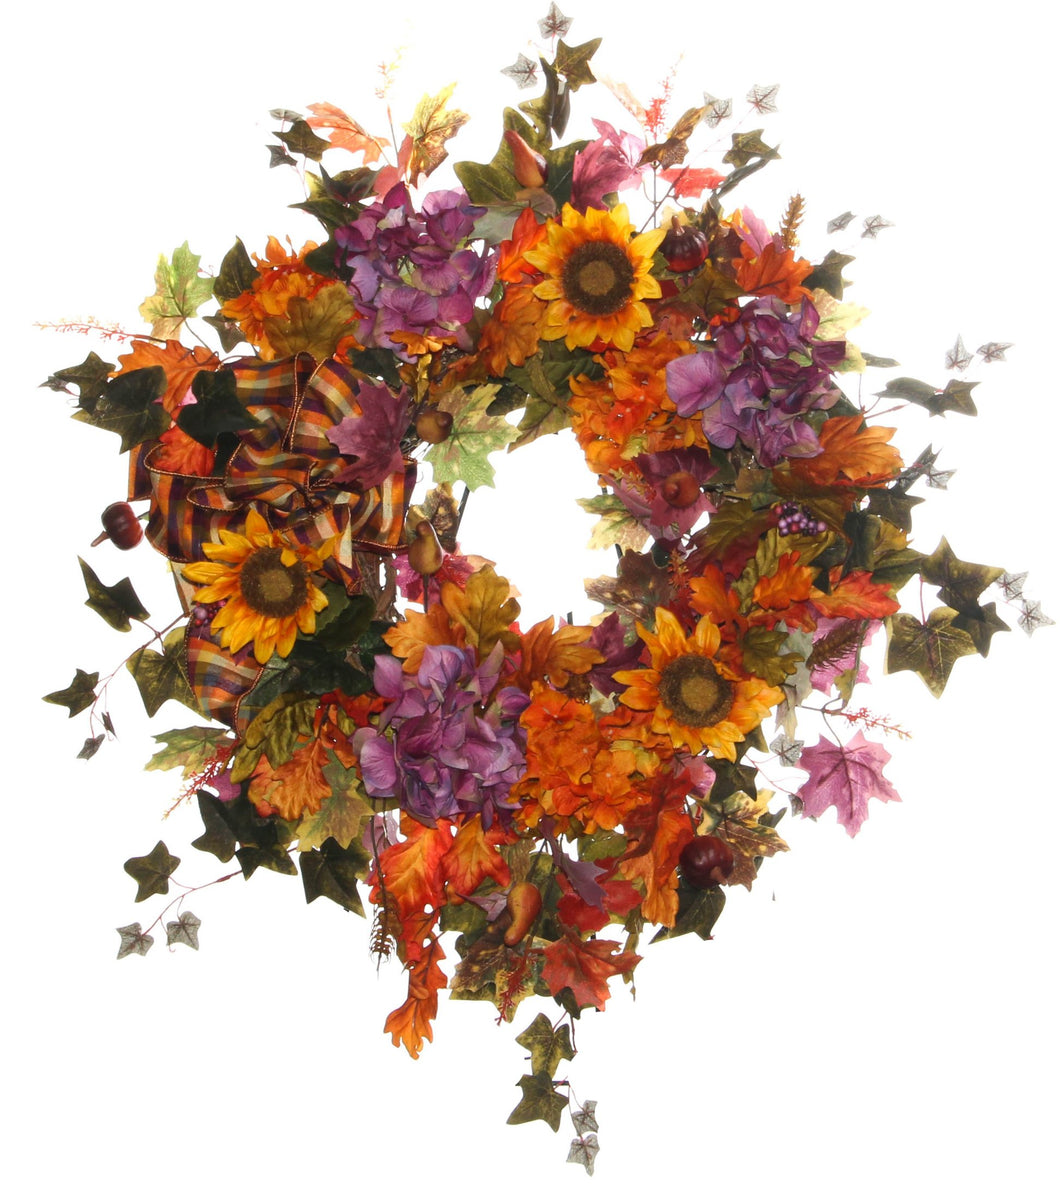 Fall Harvest Wreath/HARV06 - April's Garden Wreath